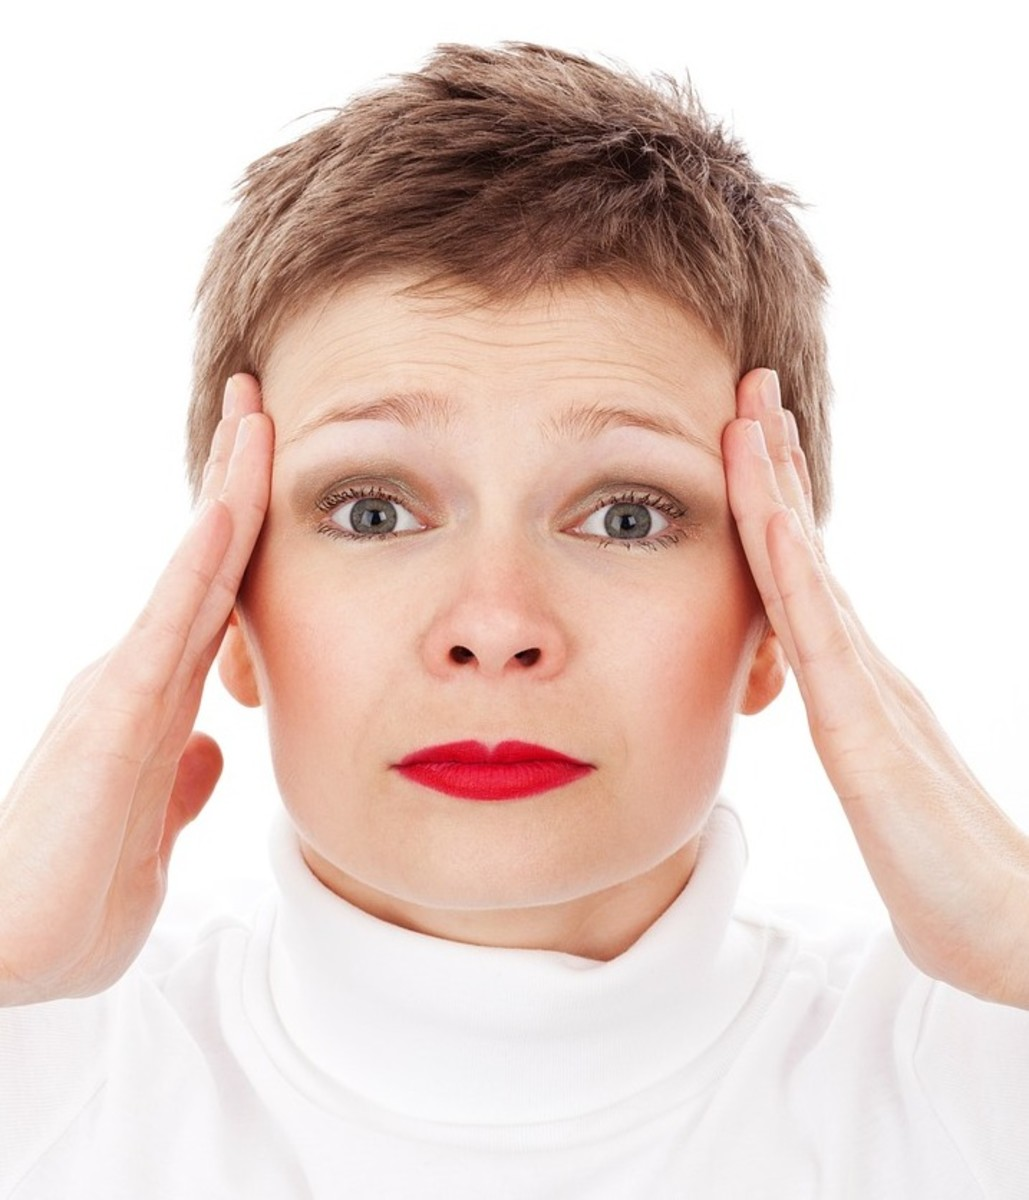 Migraine Headaches— Symptoms, Treatment, and Medication